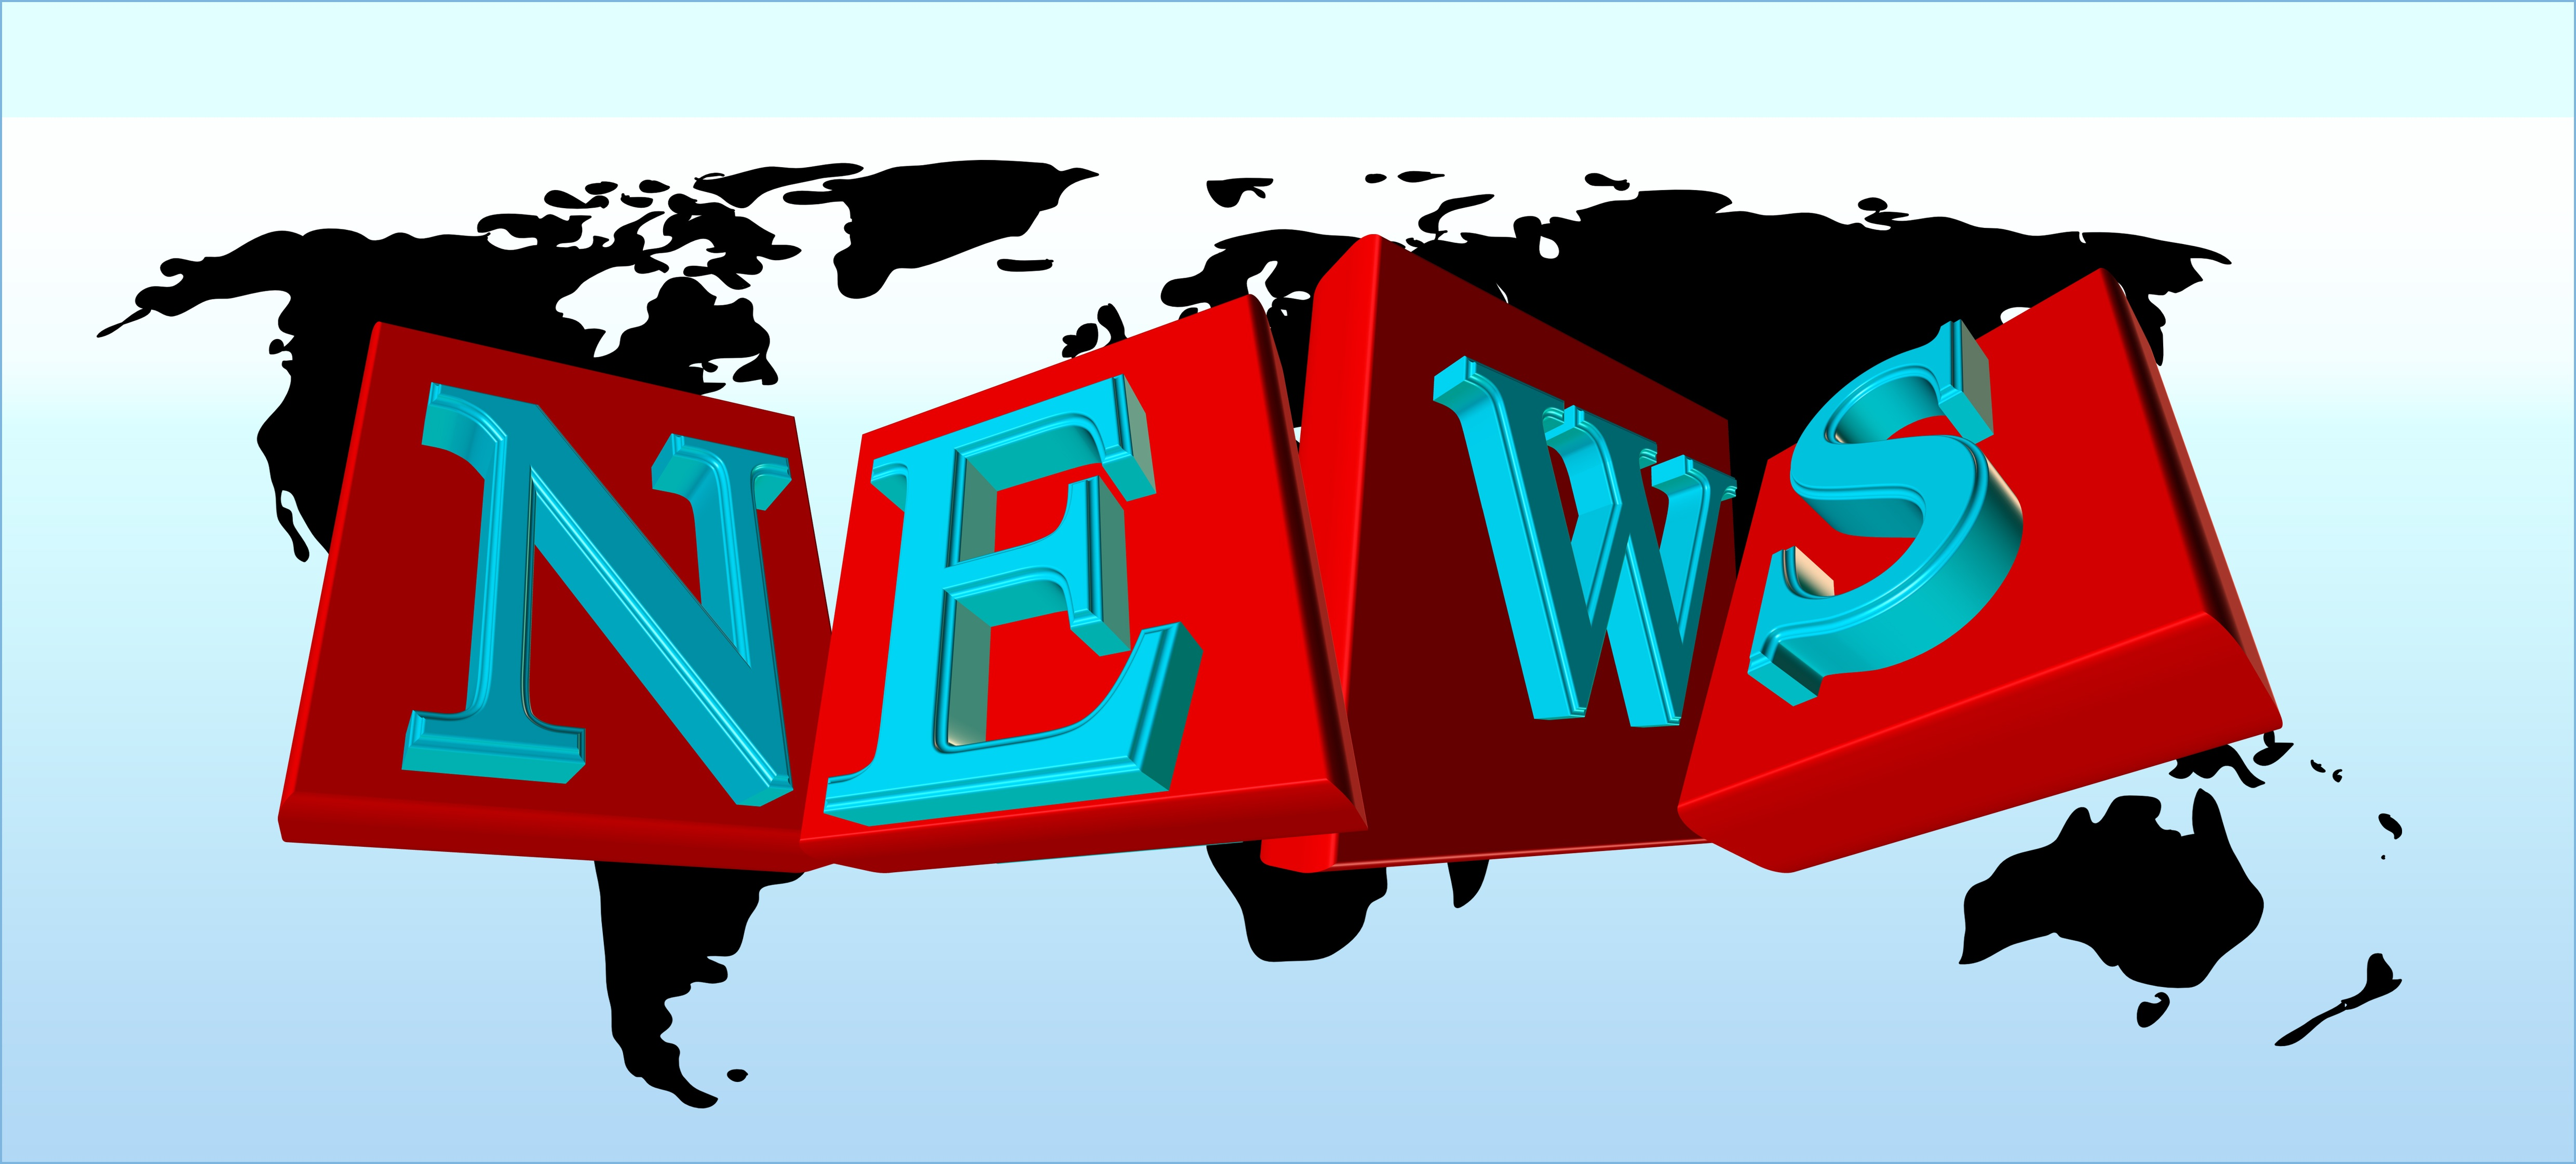 Trade Finance News, Update & Trends Around The World